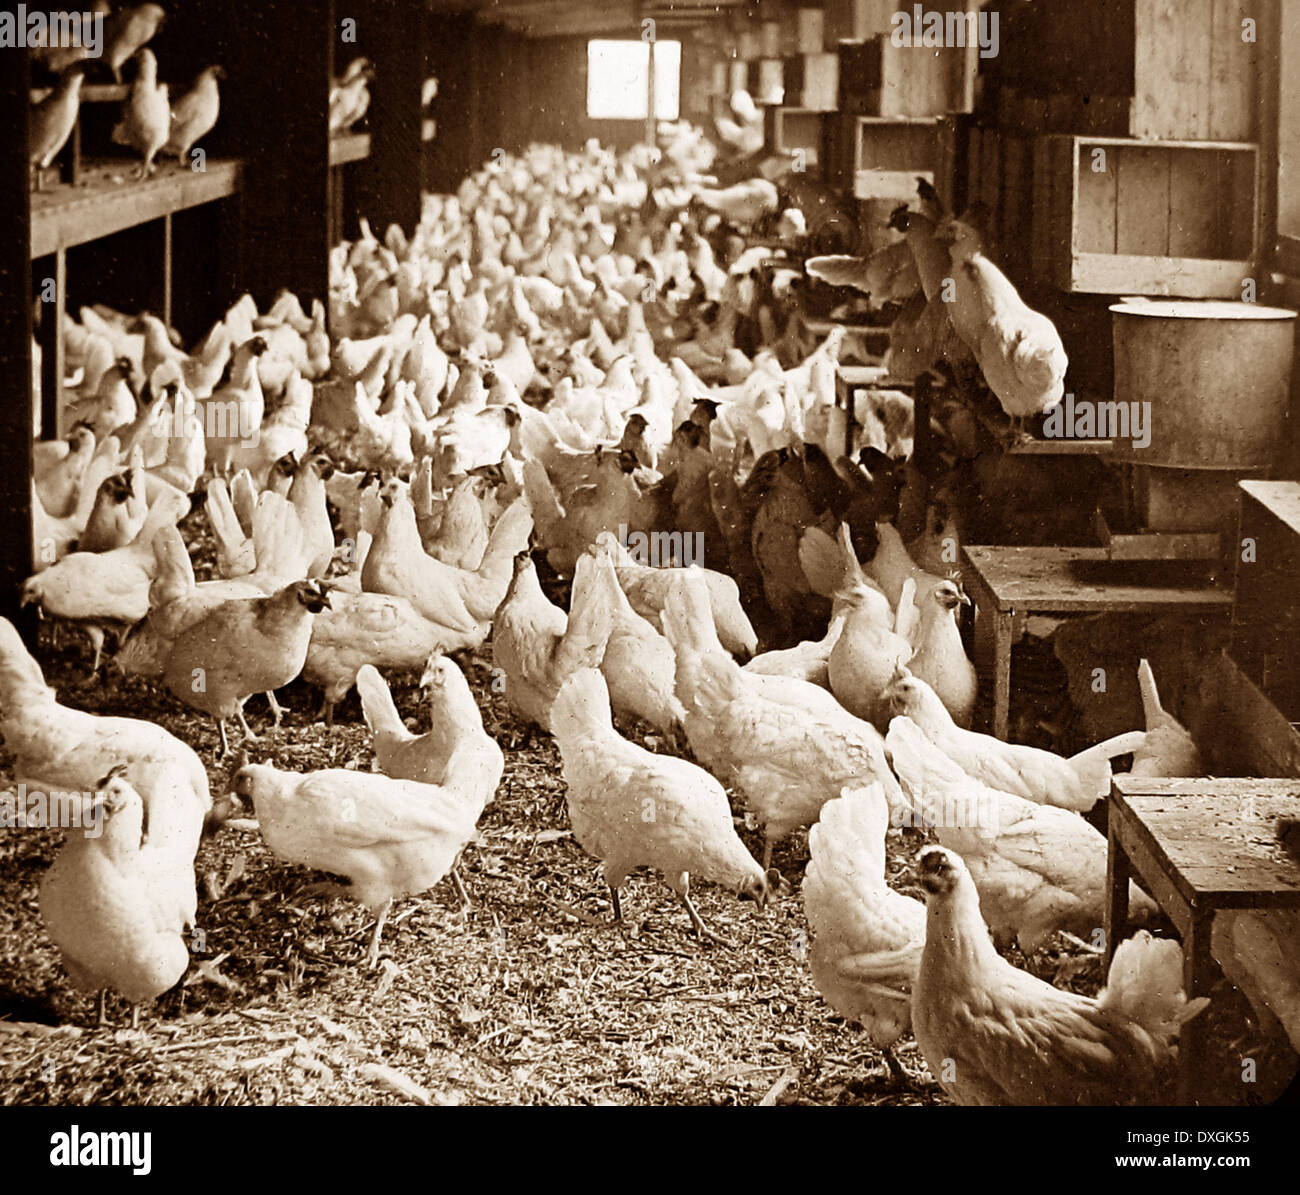 Corning Egg Farm, Bound Brook, New Jersey, USA early 1900s - Stock Image